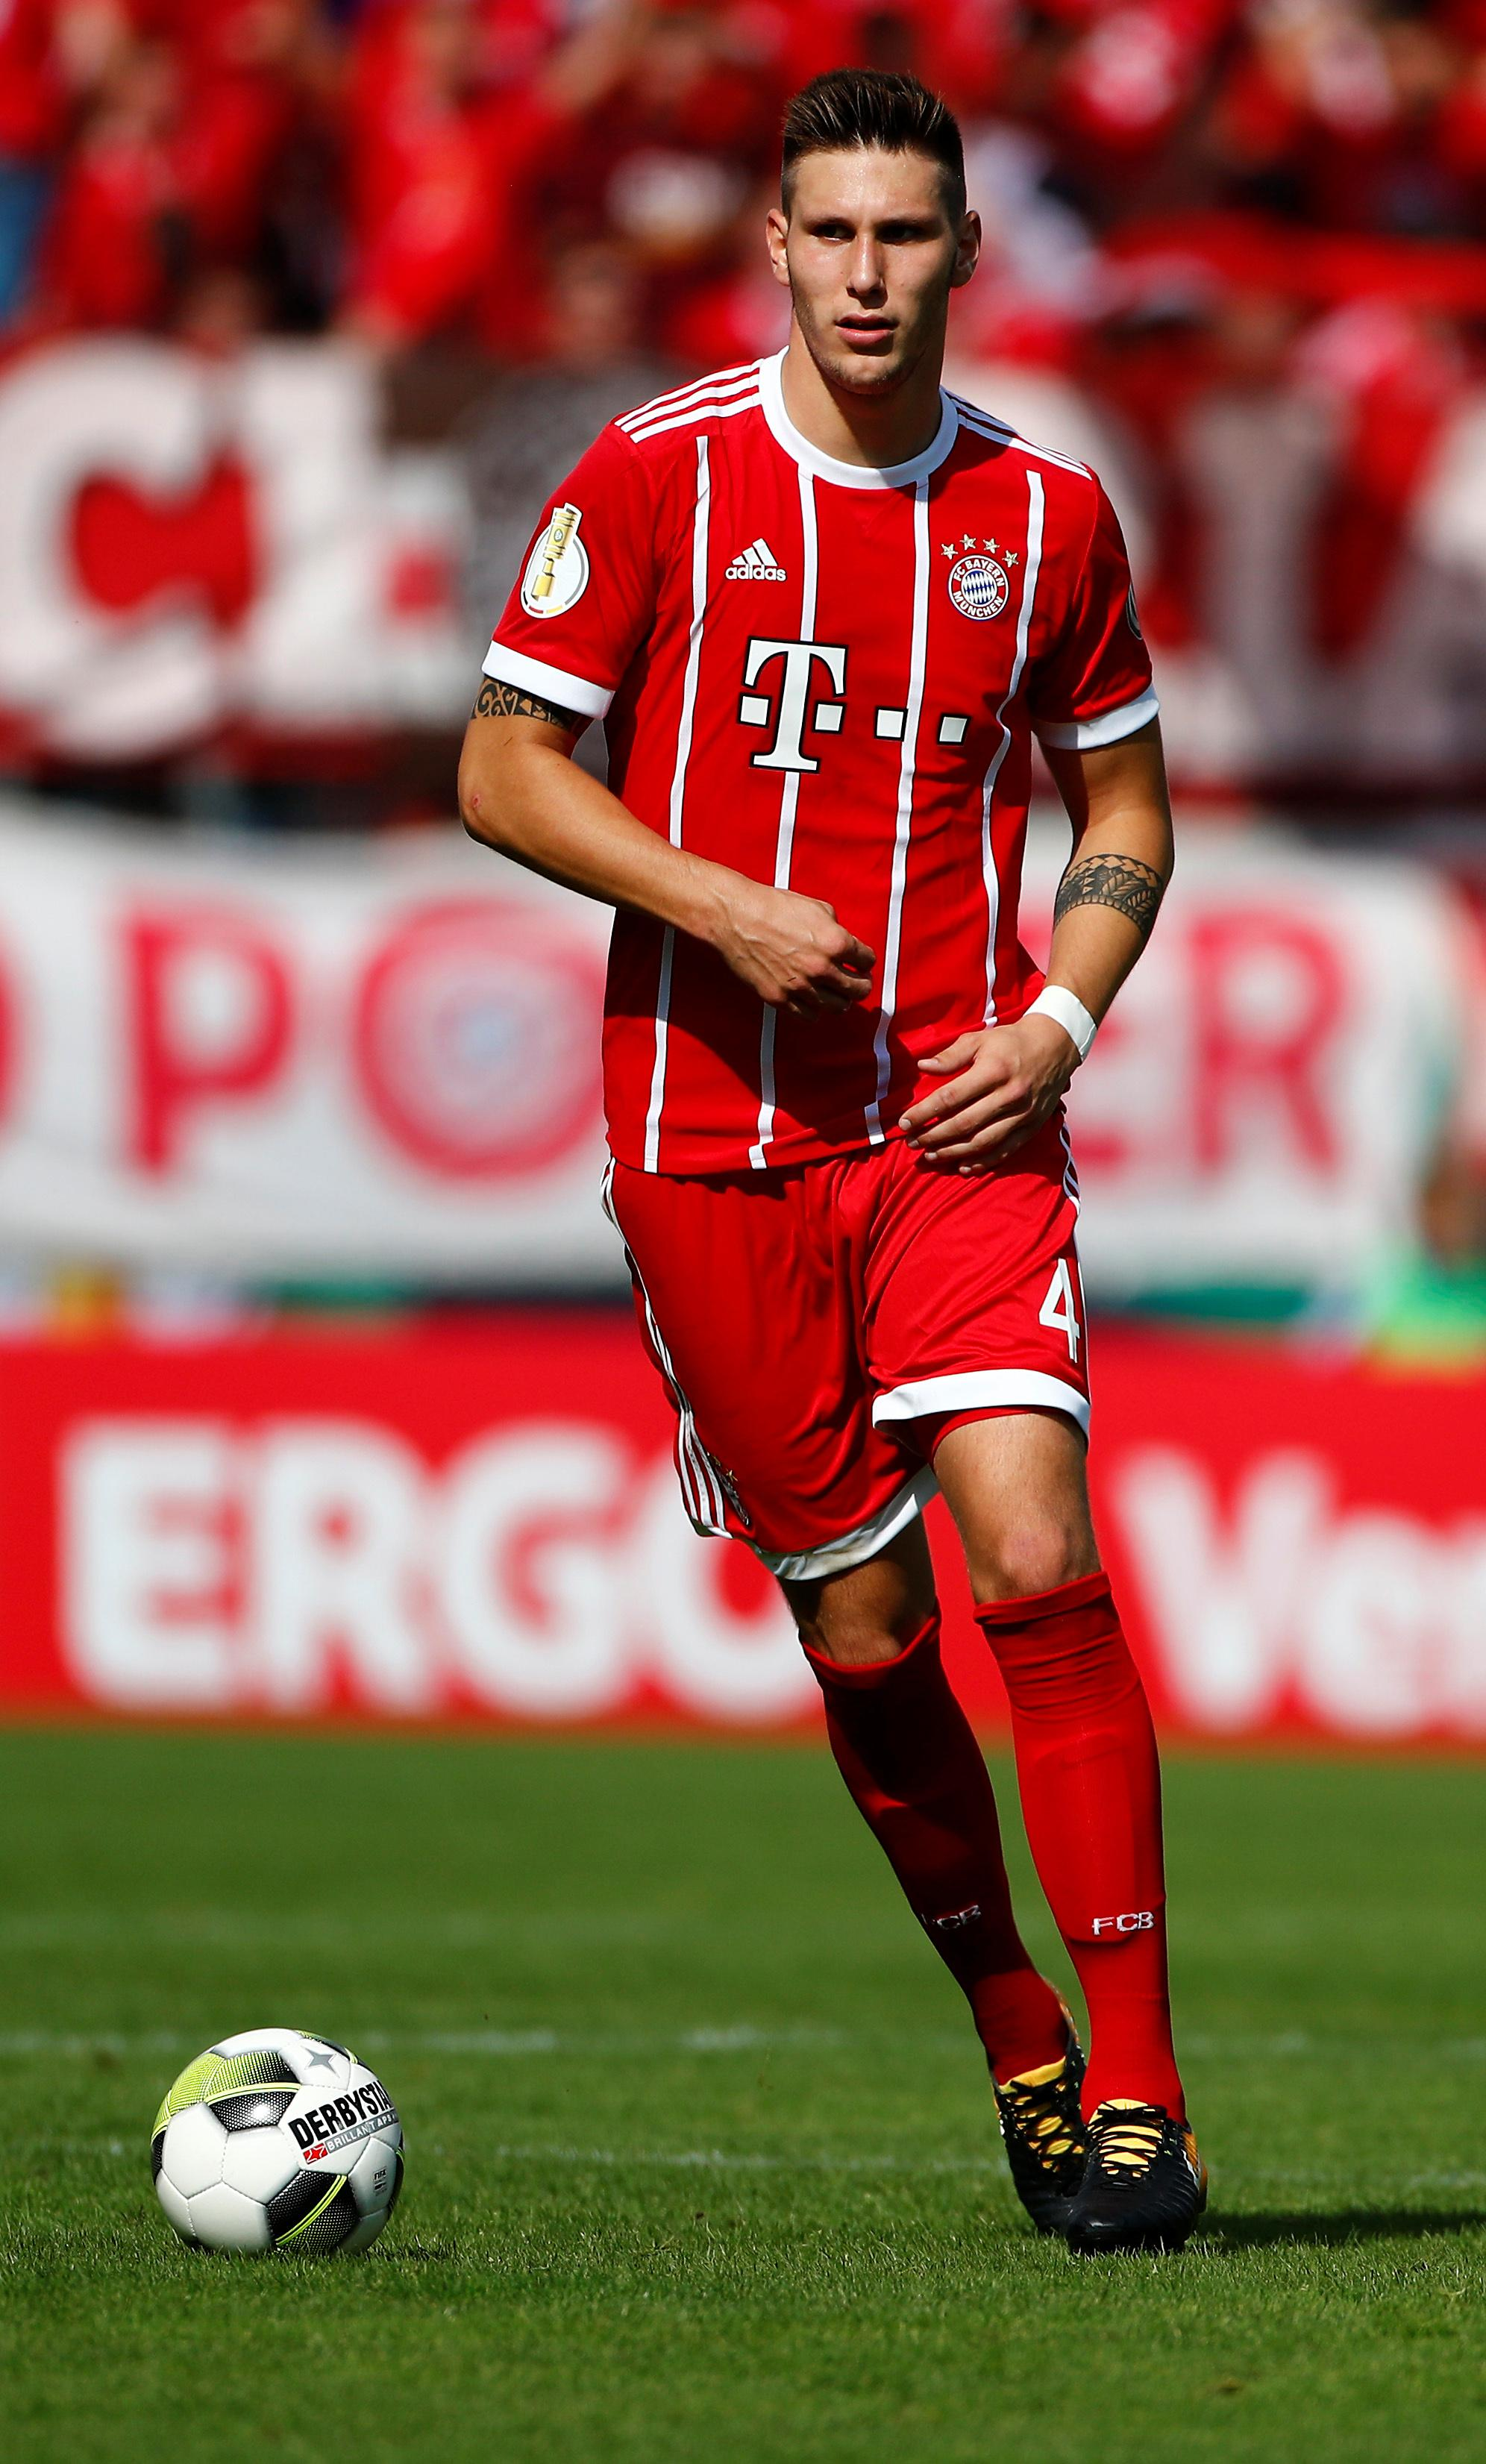 Bayern defender Suele sidelined with torn cruciate ligament